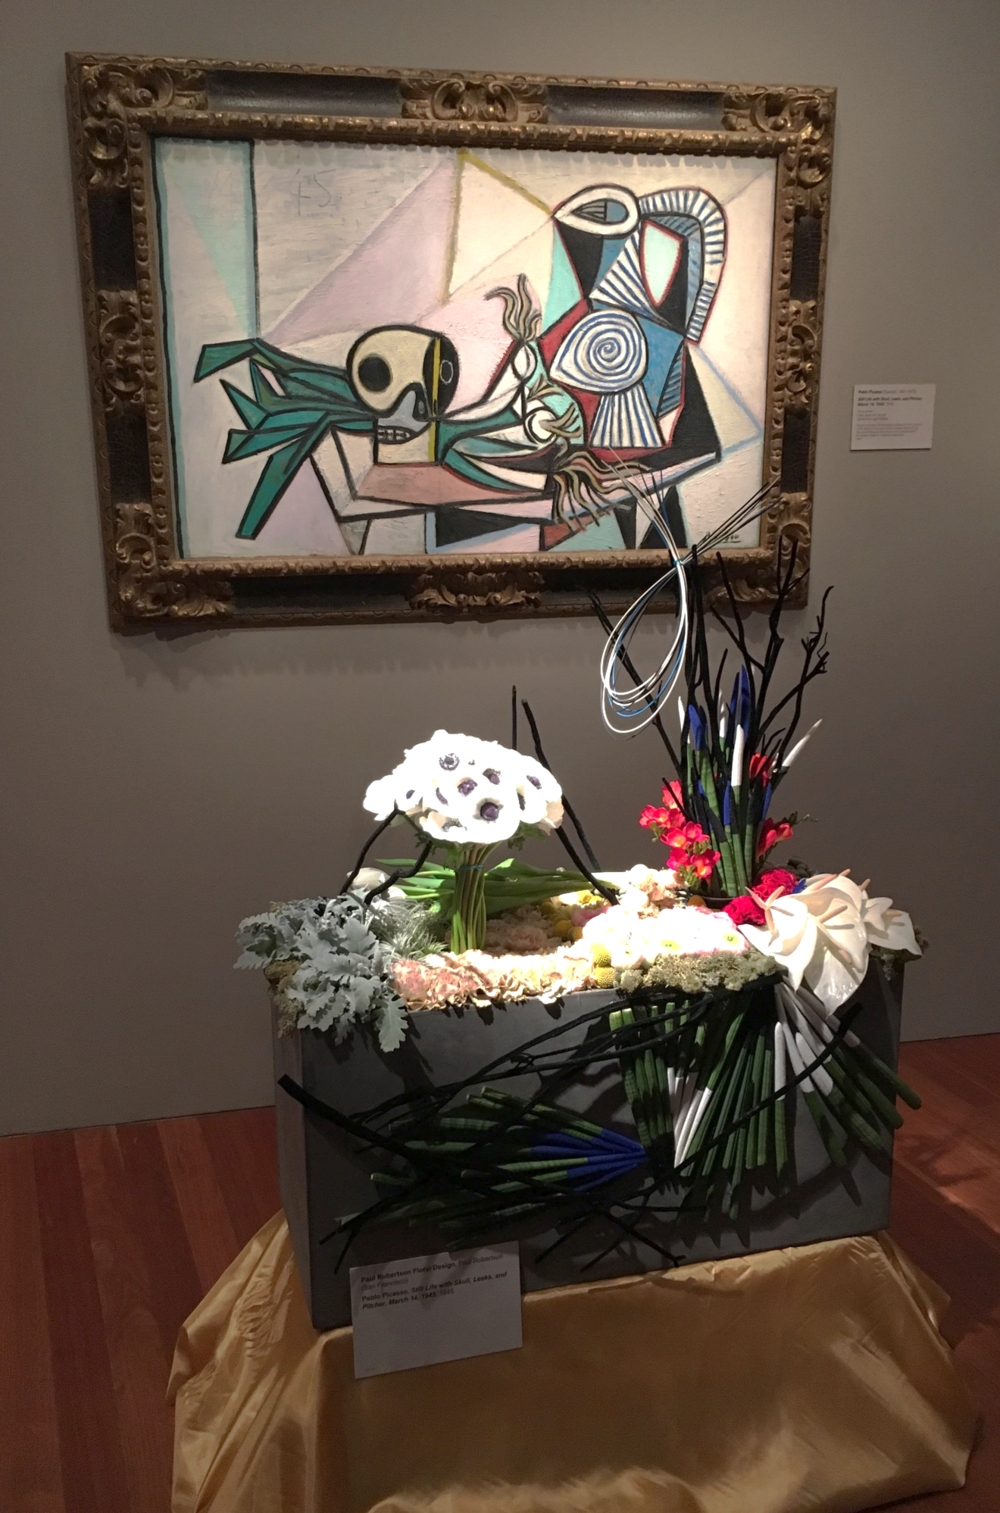 Picasso! Holy Moly! I love how this floral arrangement played with shapes and structure.